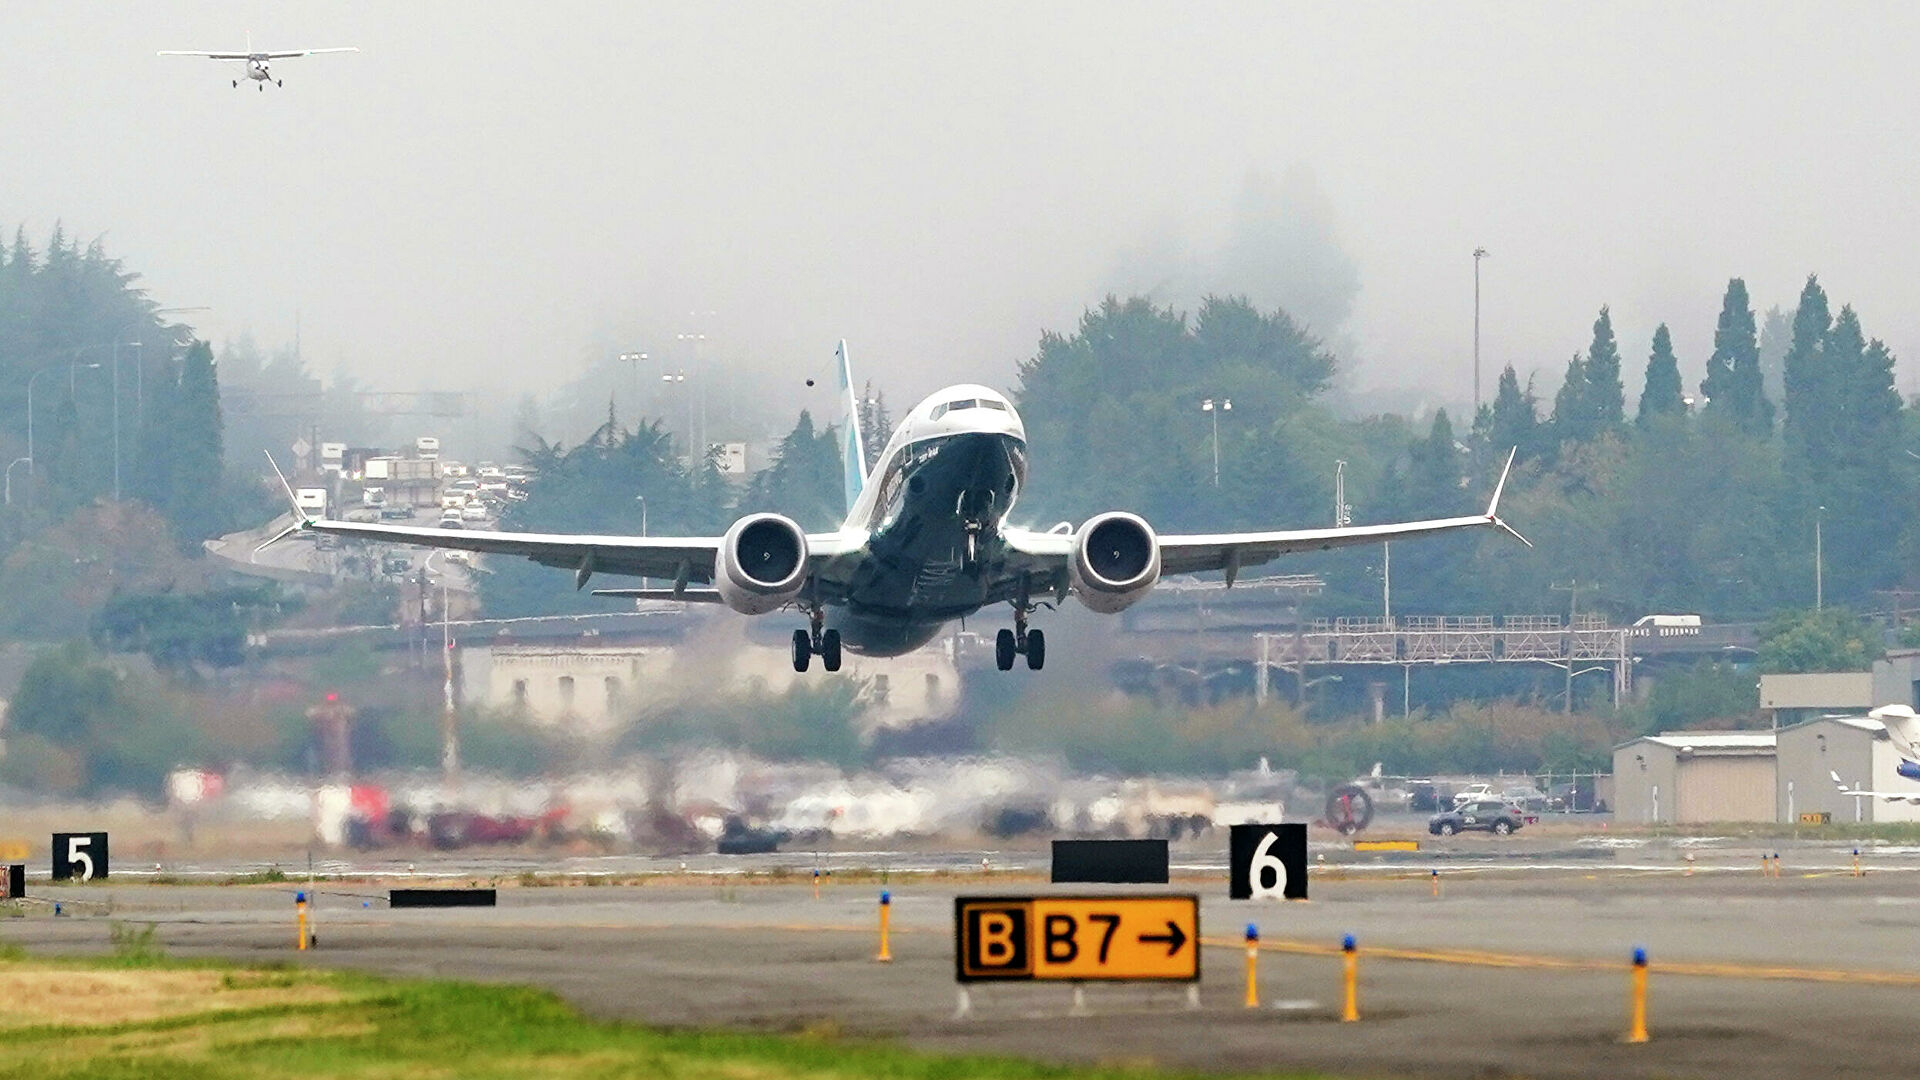 Boeing sold major part of MAX airplanes that became unsolicited during pandemic